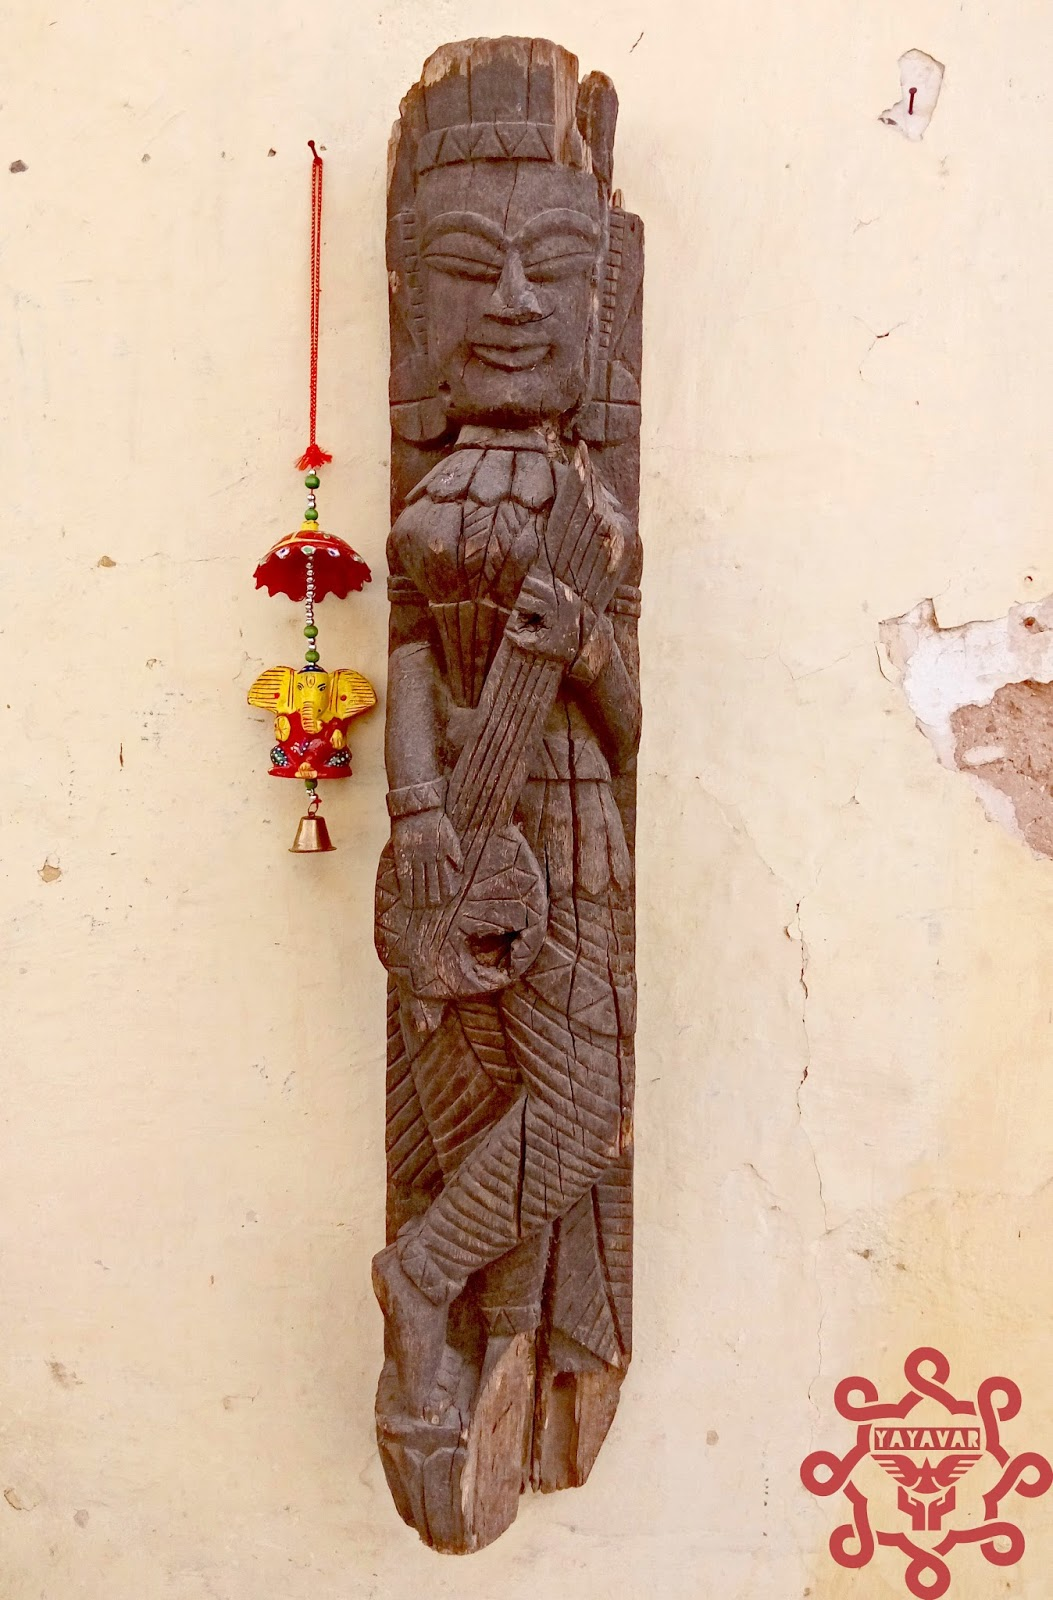 Wooden Statue Found At Bundi